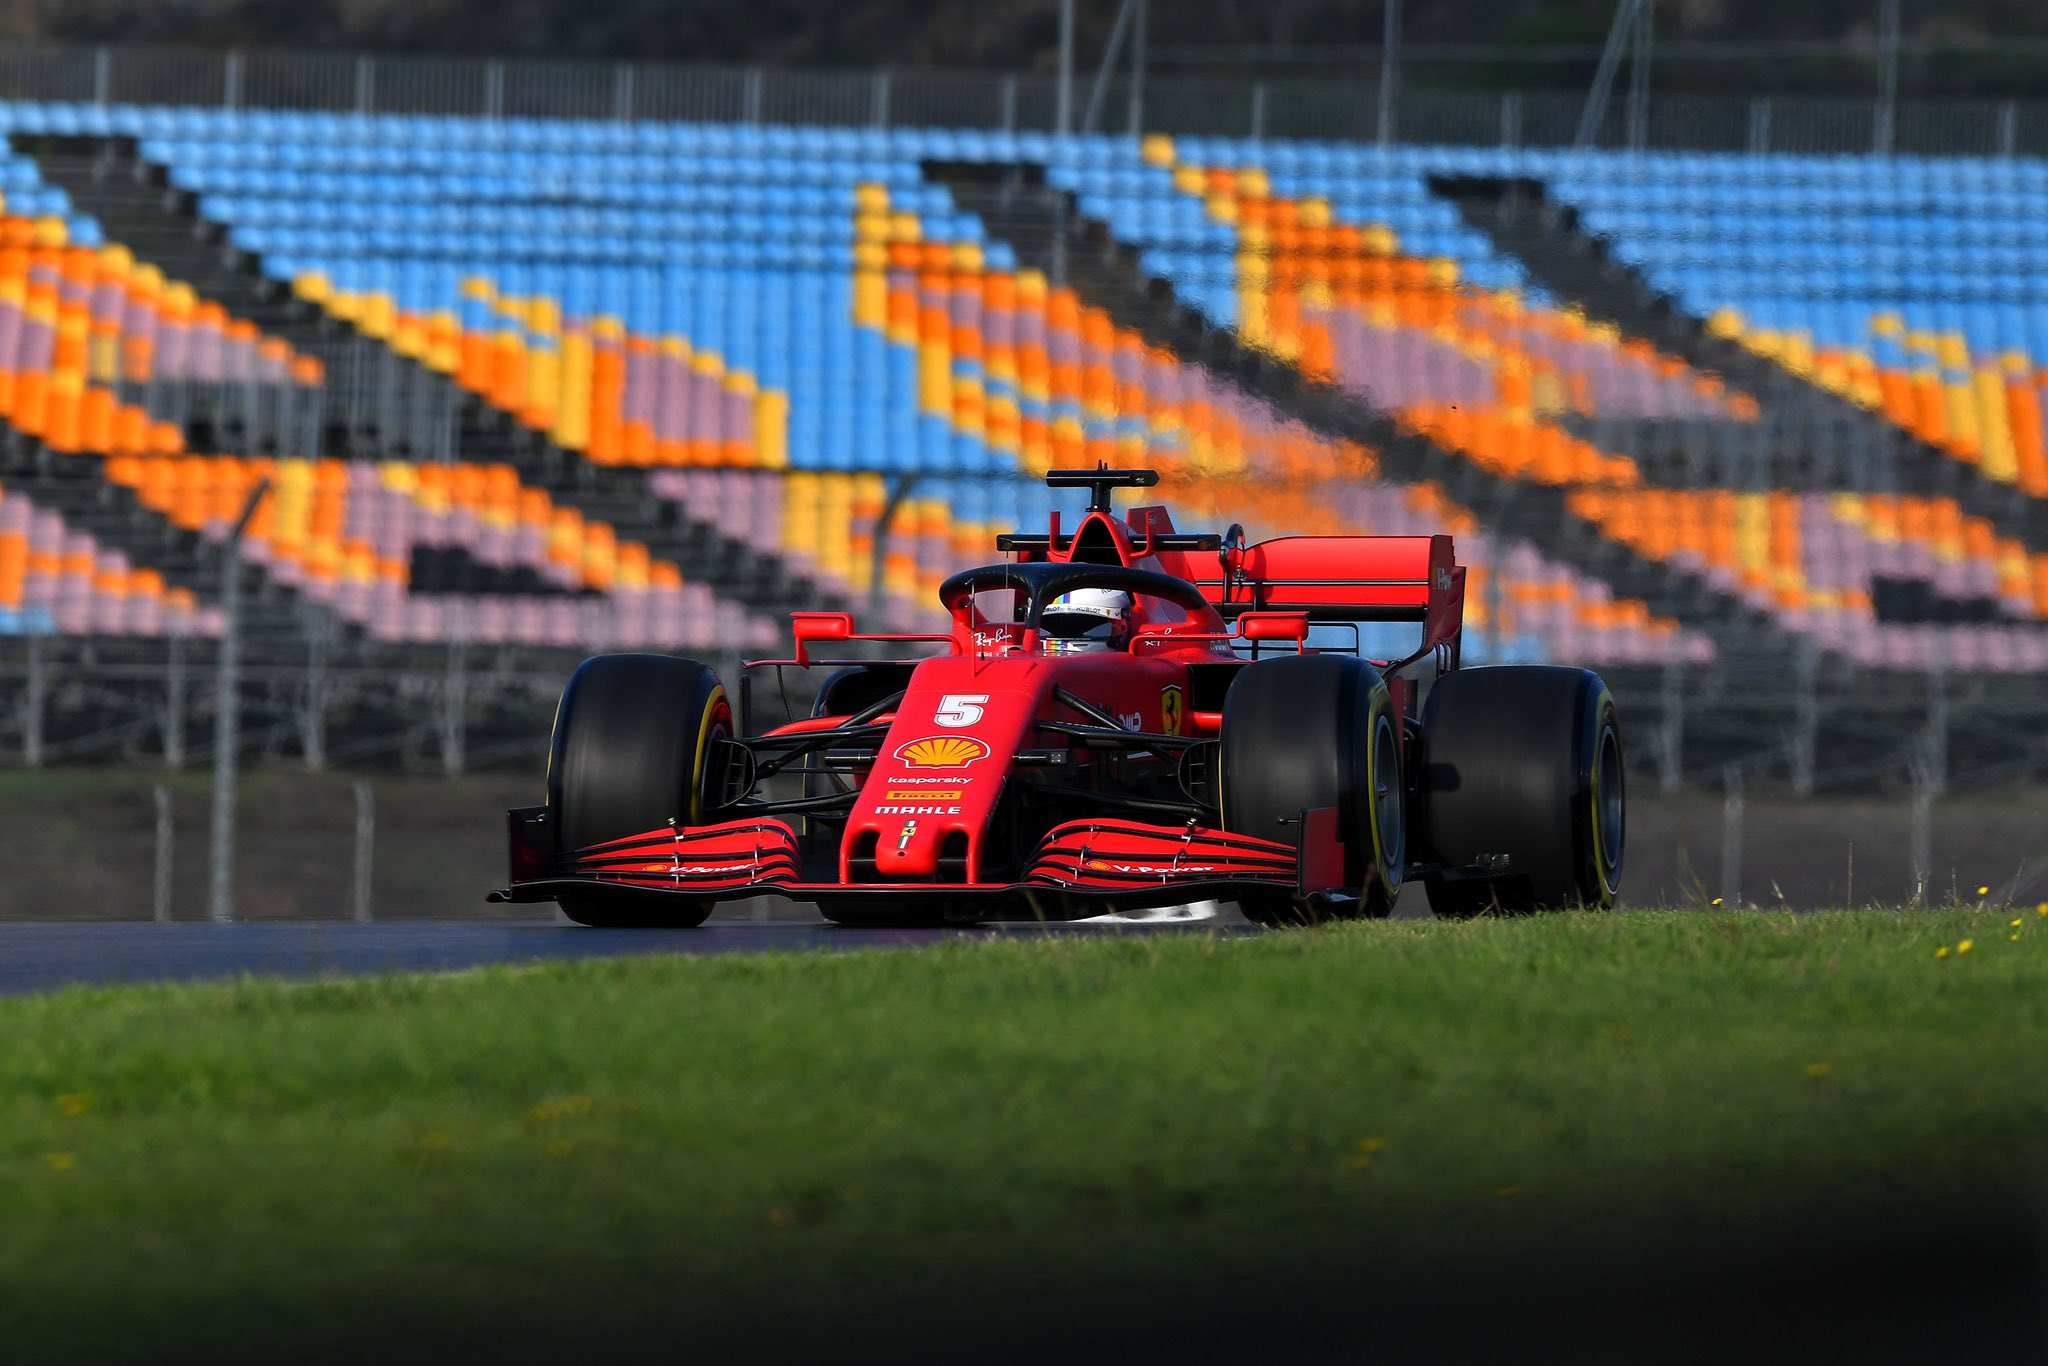 Ferrari buoyed ahead of 2021 by 'more consistent' 2020 car - Speedcafe